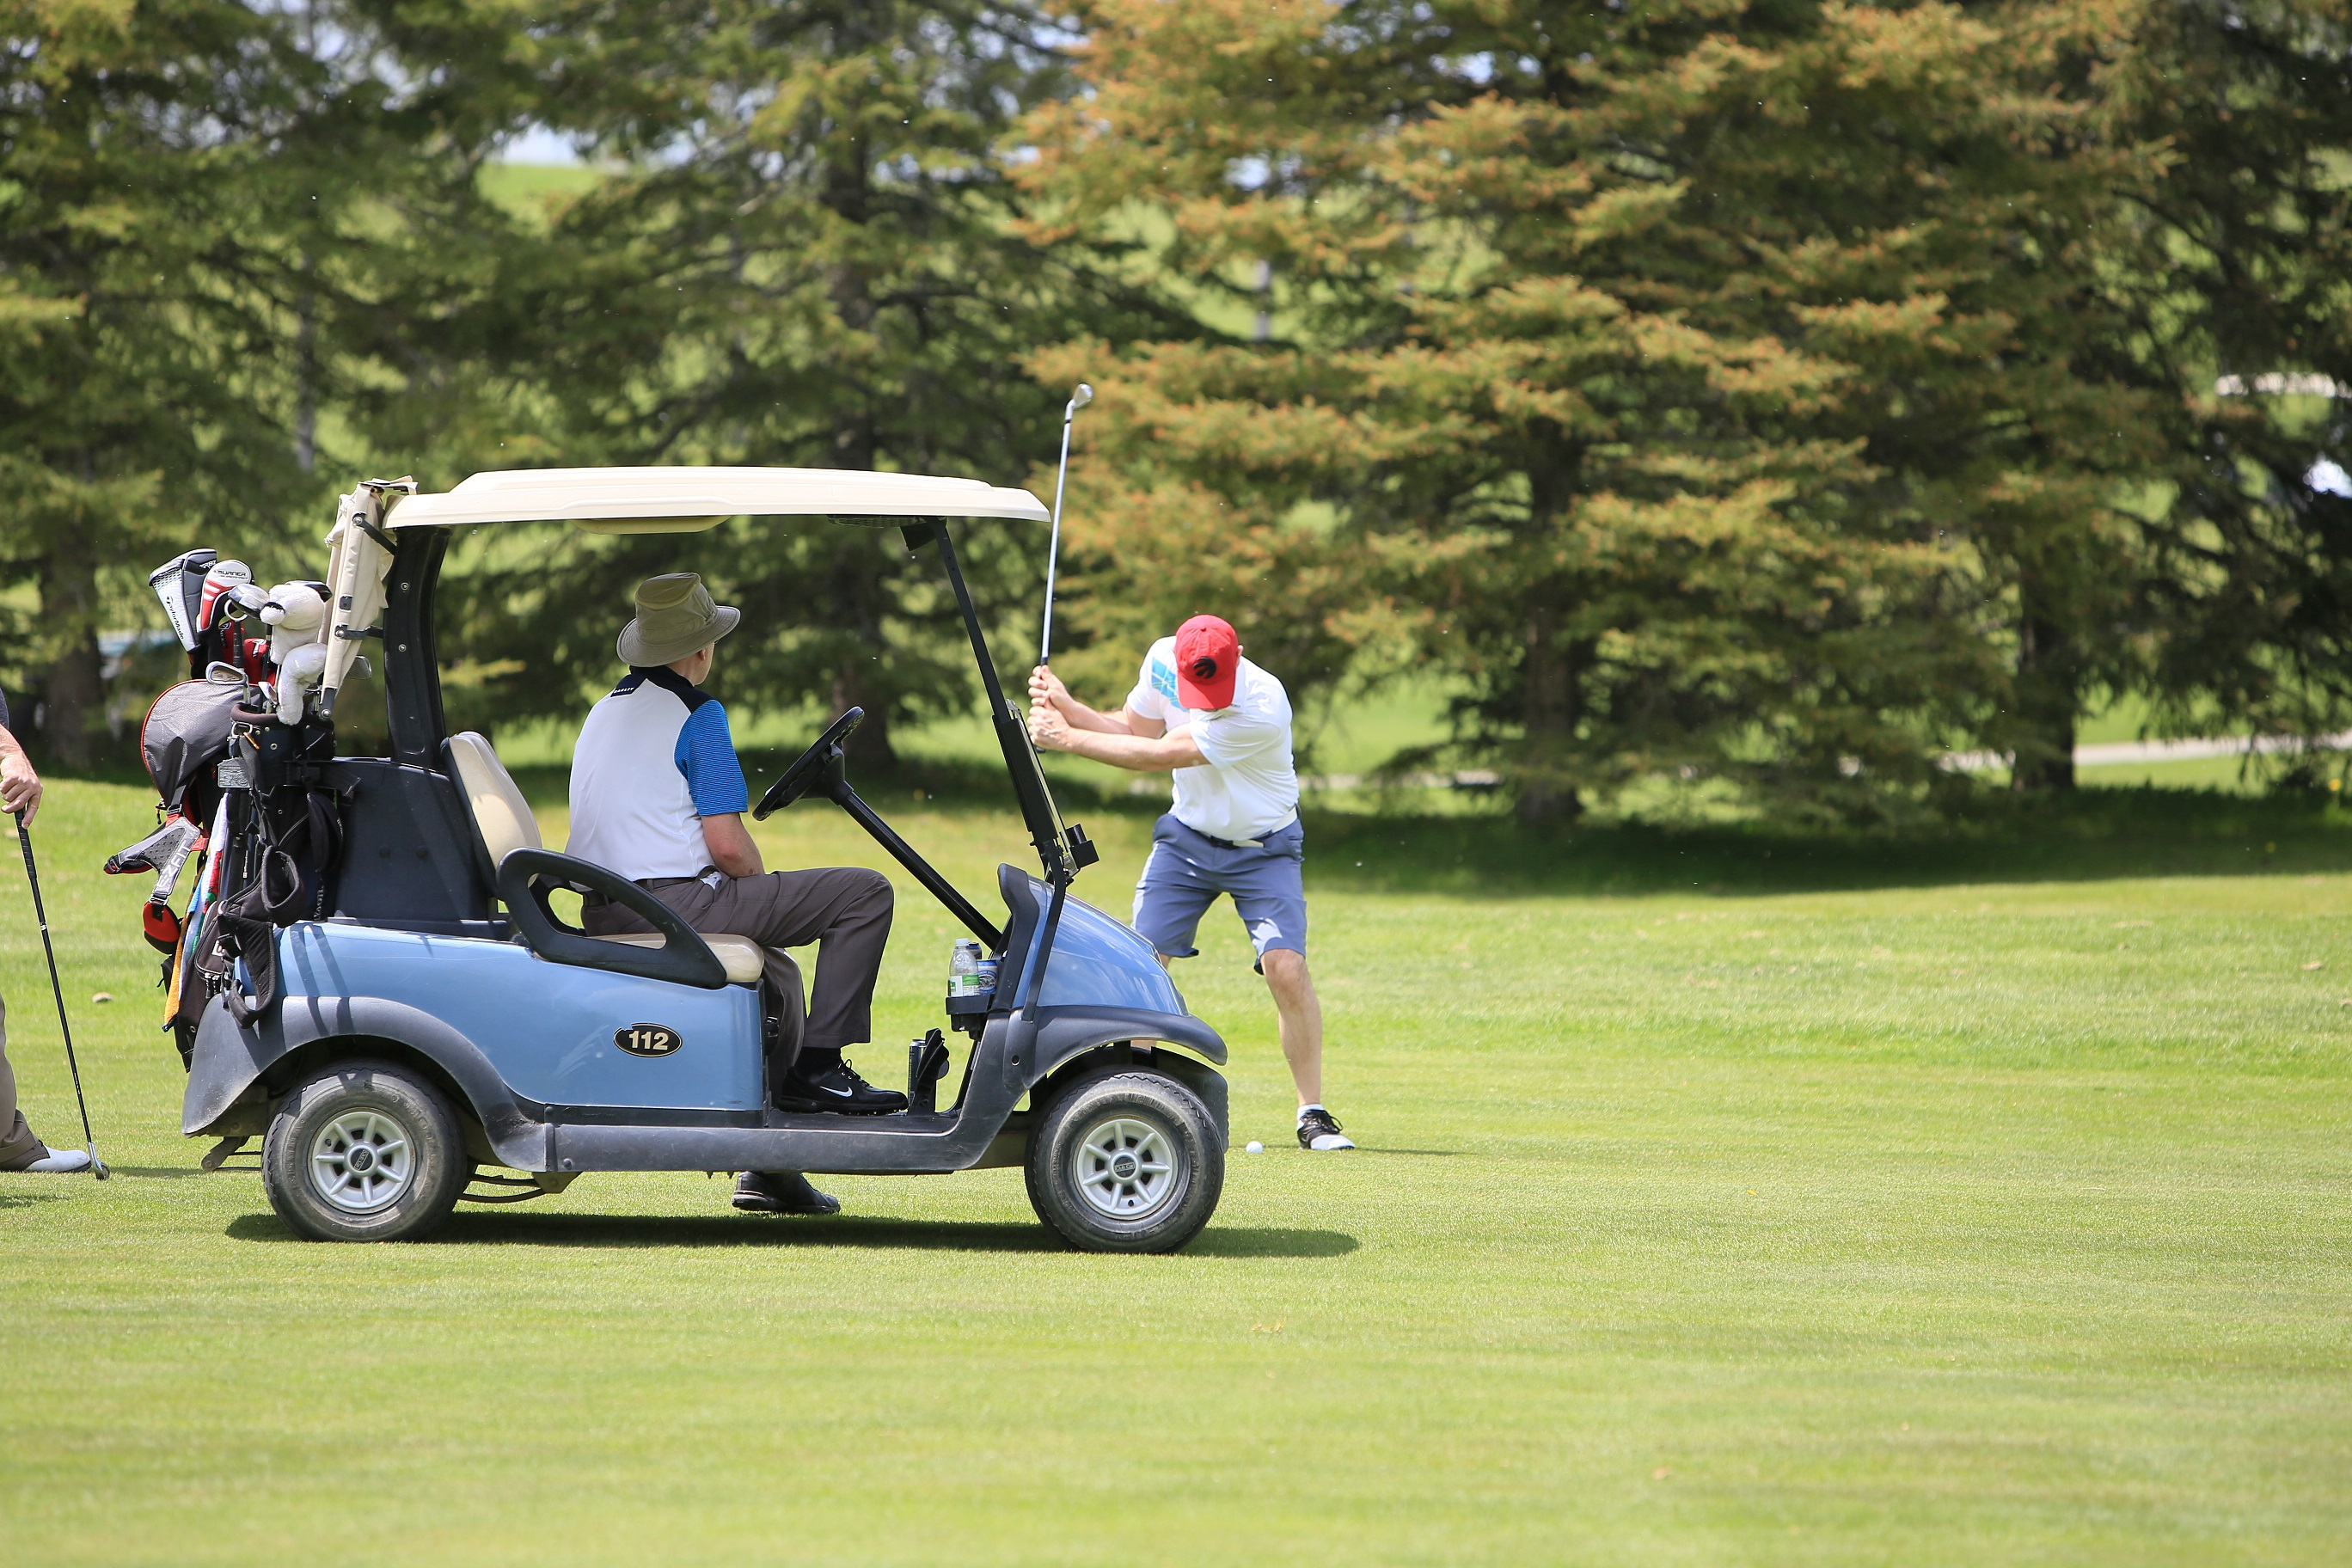 2019 Bolton Rotary Early Bird Golf Classic gallery image #5